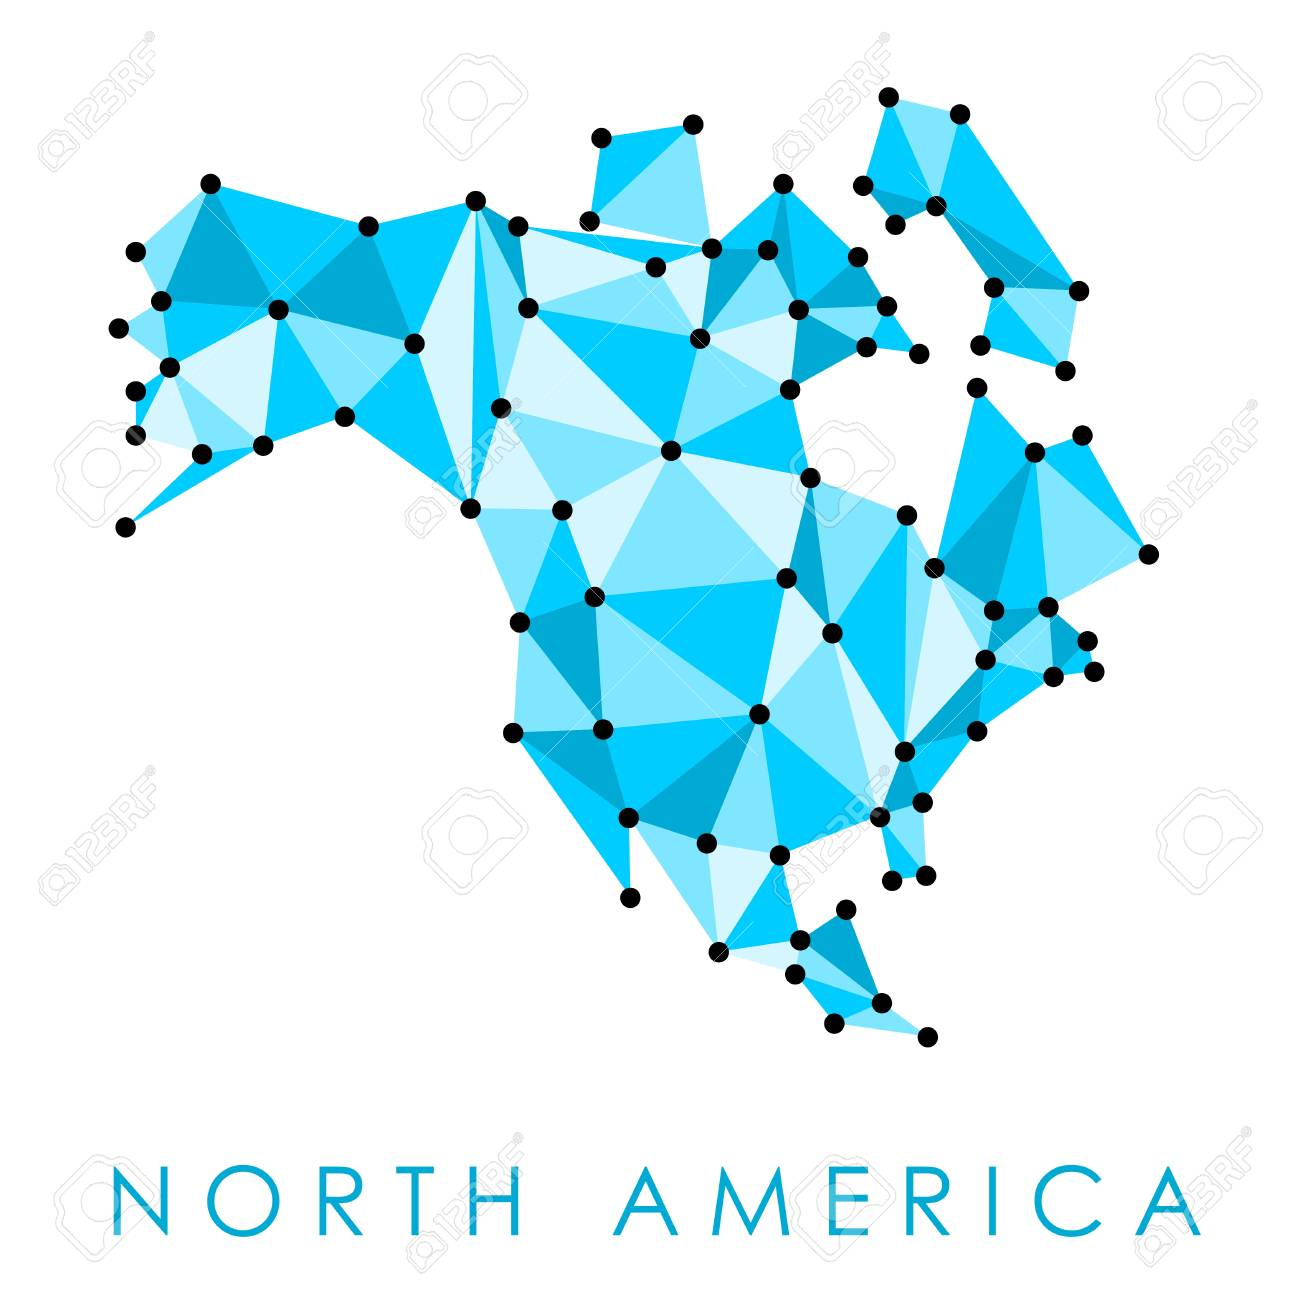 north america low poly map vector geometric style illustration